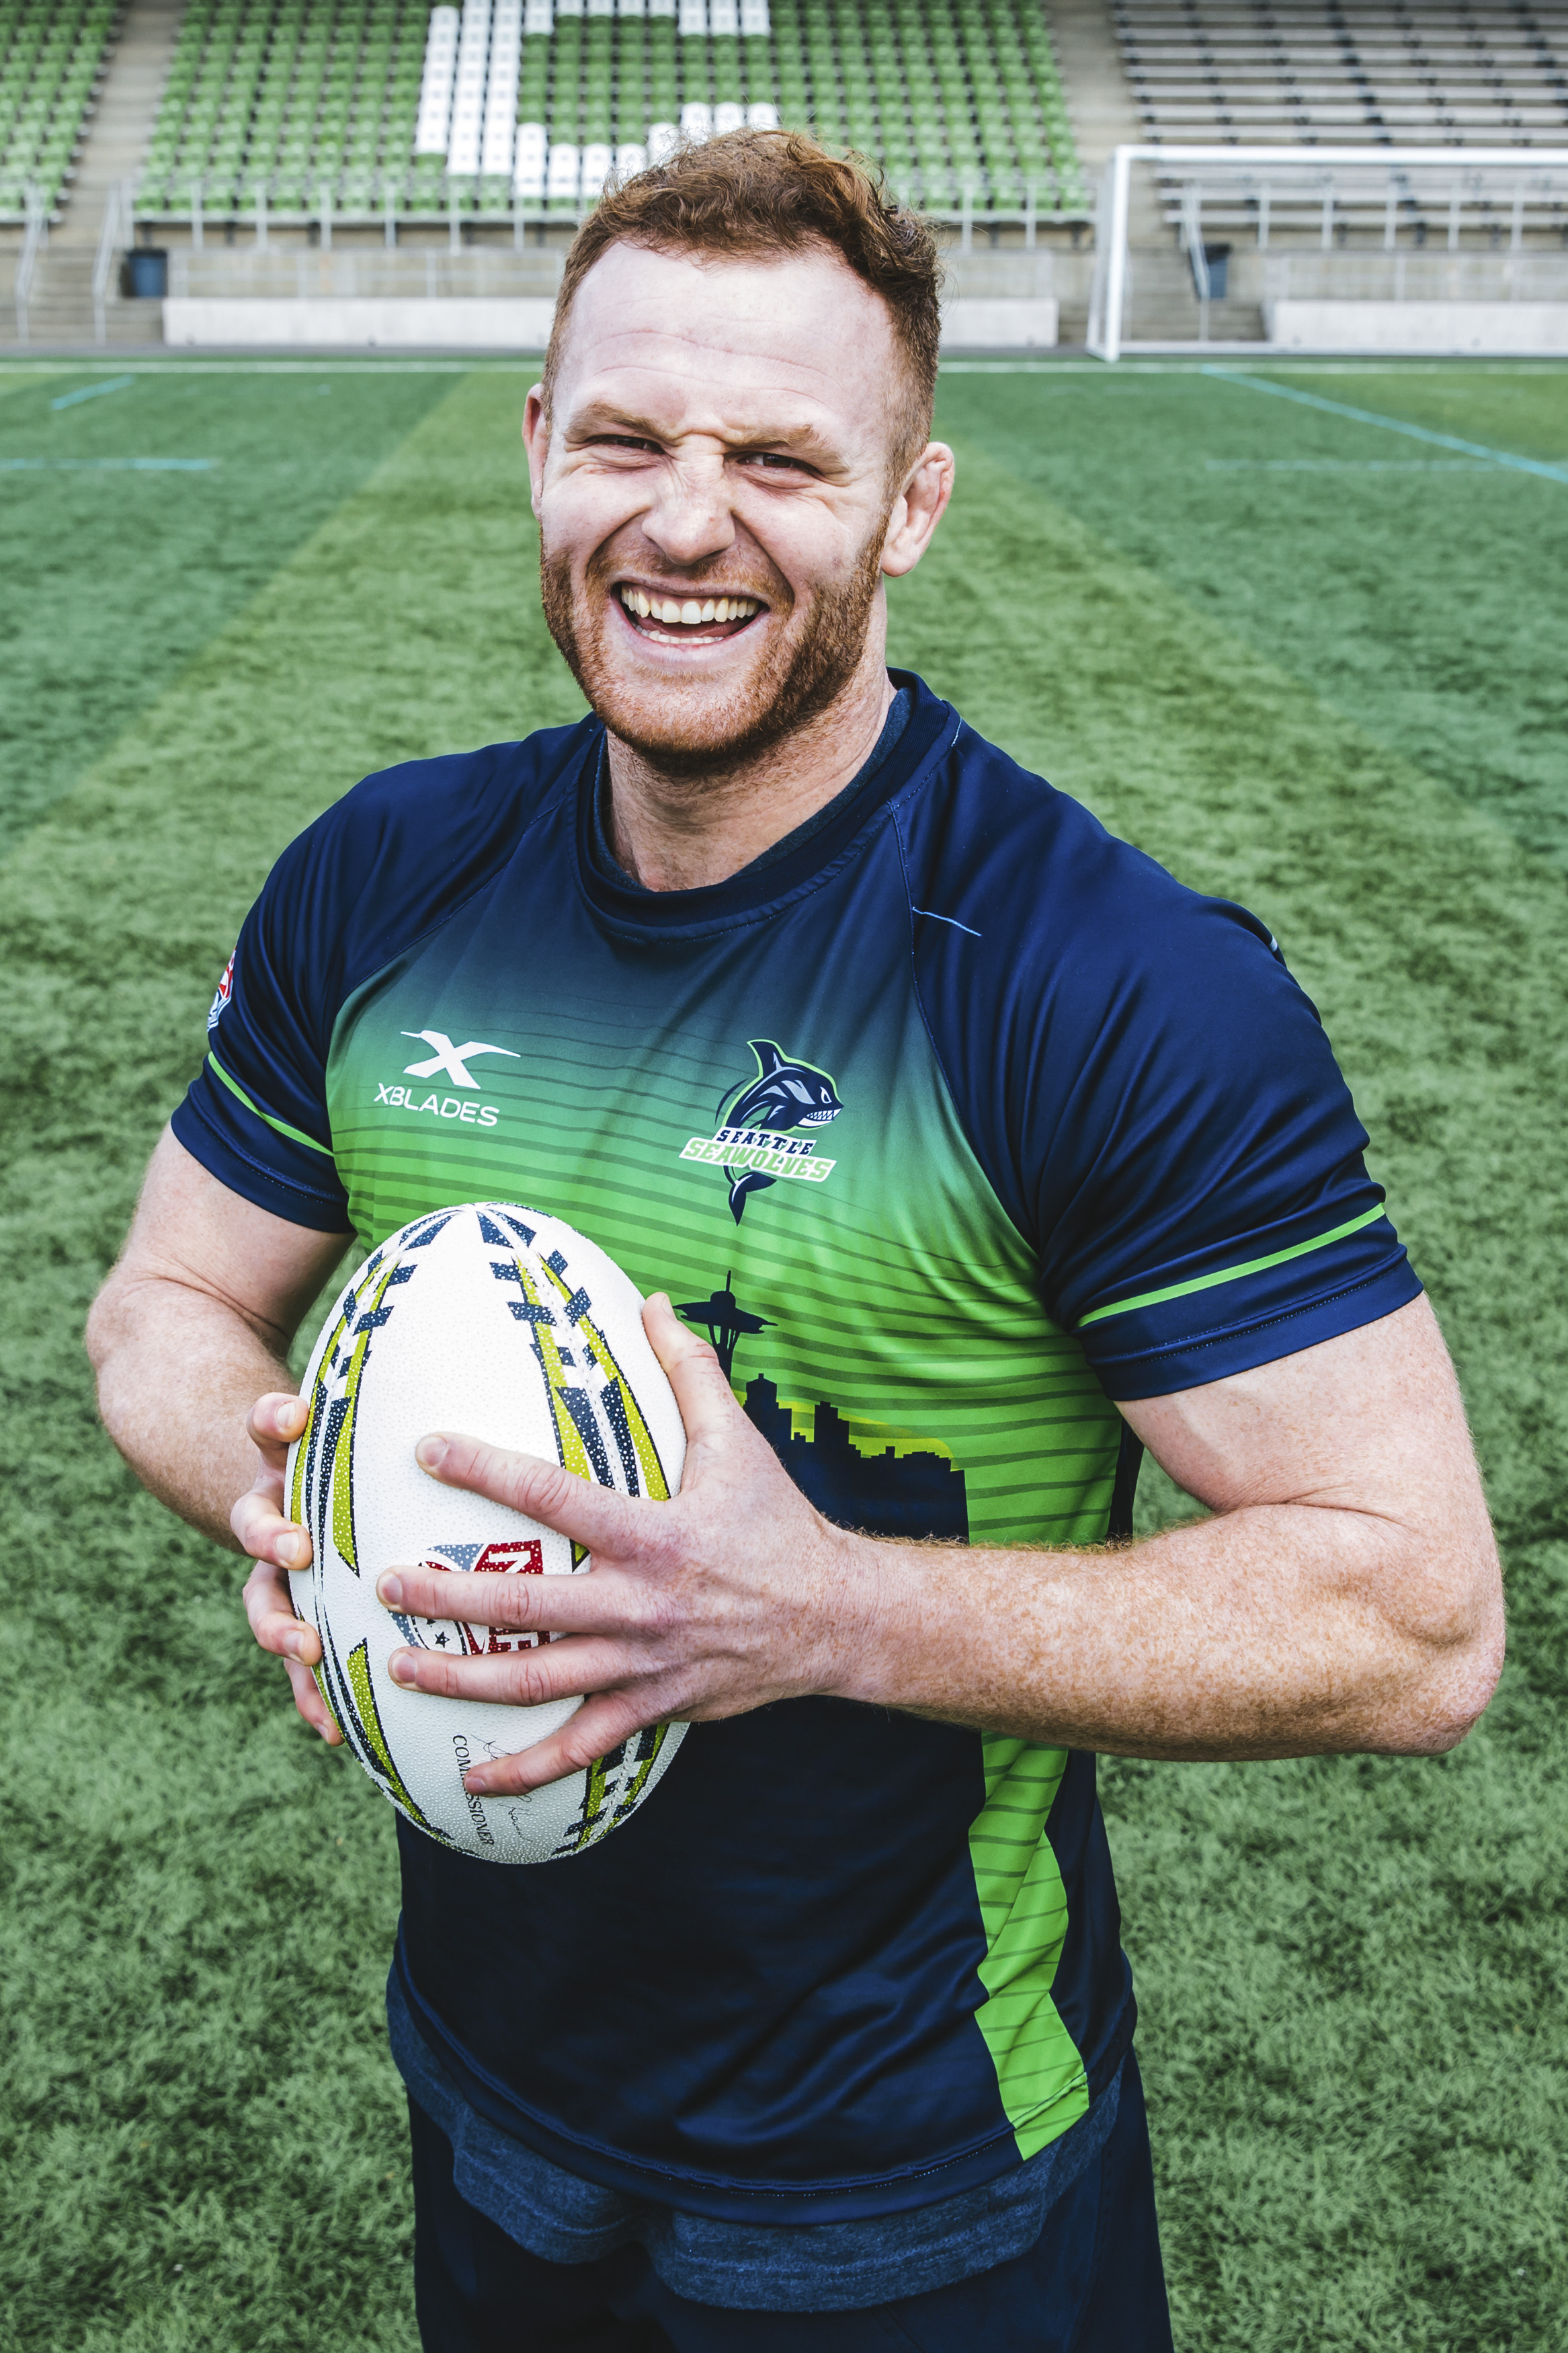 Ooooh, I have a crush on Brad! Maybe it's the fact that he's 6'5 or maybe it's because he had a fun energy at the shoot but ANYWAYS. This handsome man, 26, plays Lock for the Seawolves and hails from Canterbury, New Zealand and his favorite snack is chocolate (Image: Sunita Martini / Seattle Refined).